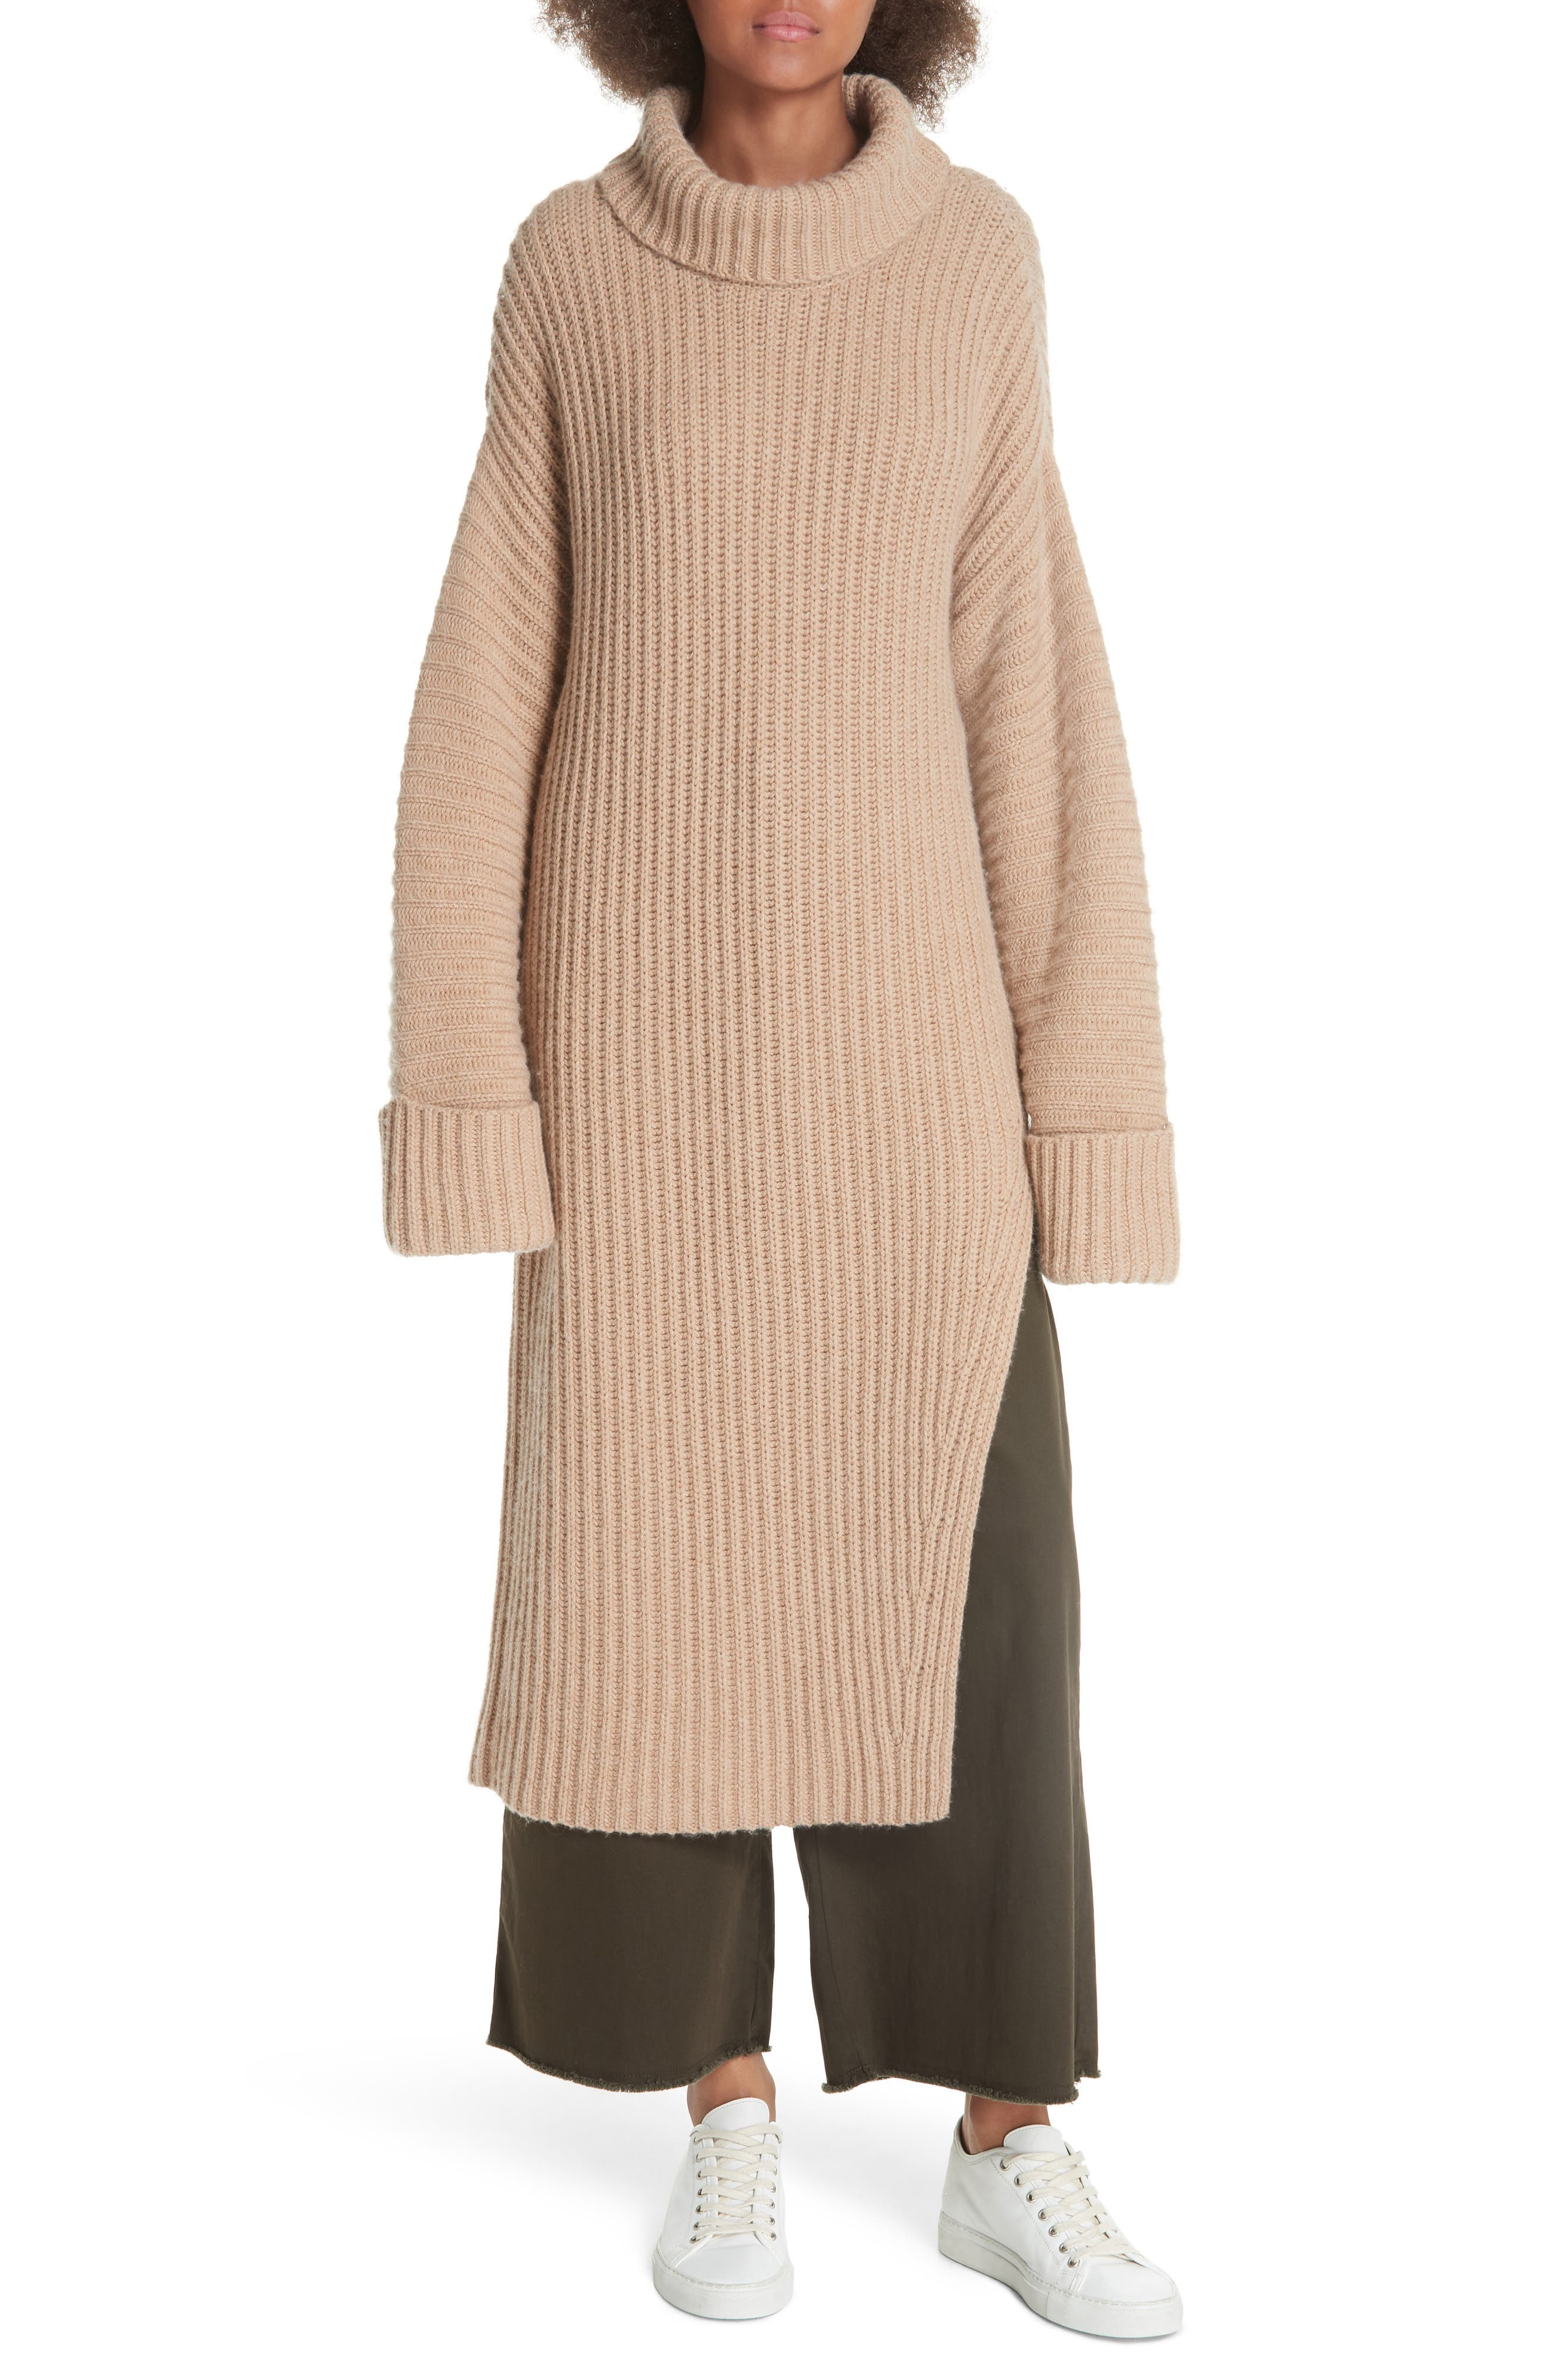 ELIZABETH AND JAMES,                             Mae Wool & Cashmere Sweater,                             Alternate thumbnail 7, color,                             250